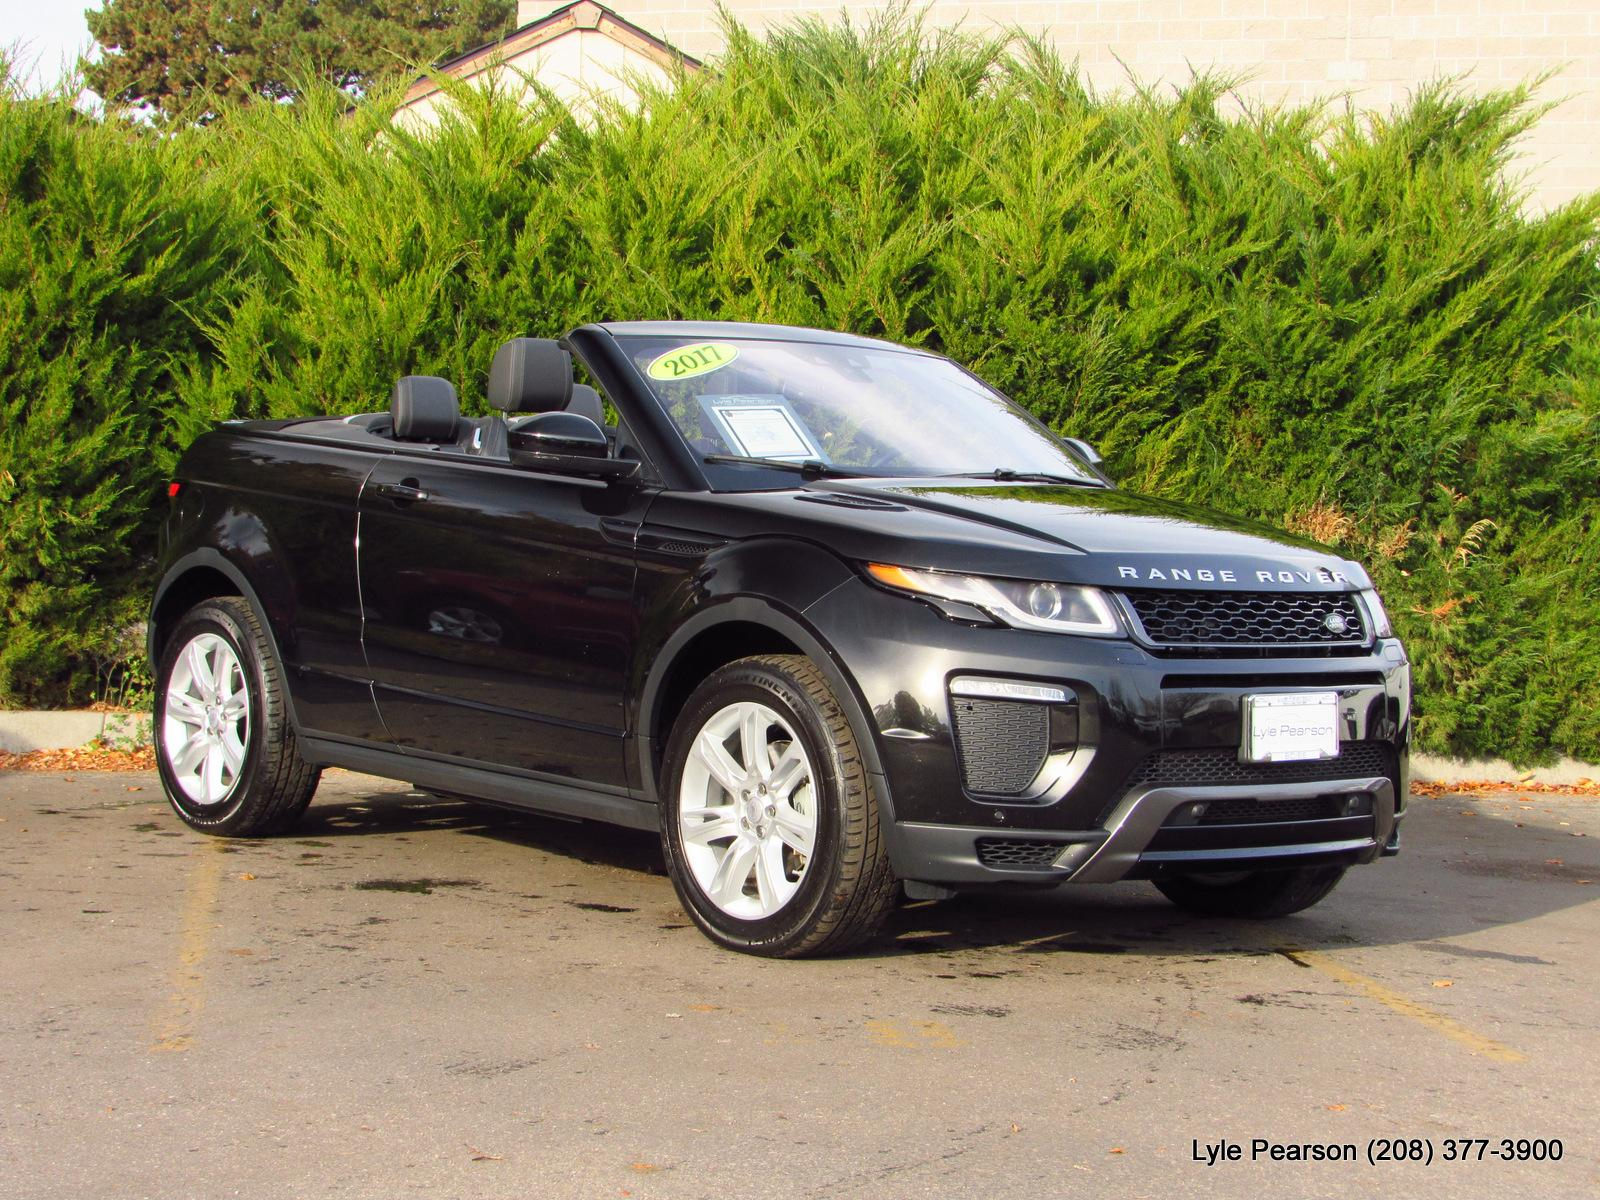 Certified Pre-Owned 2017 Land Rover Range Rover Evoque Convertible HSE  Dynamic